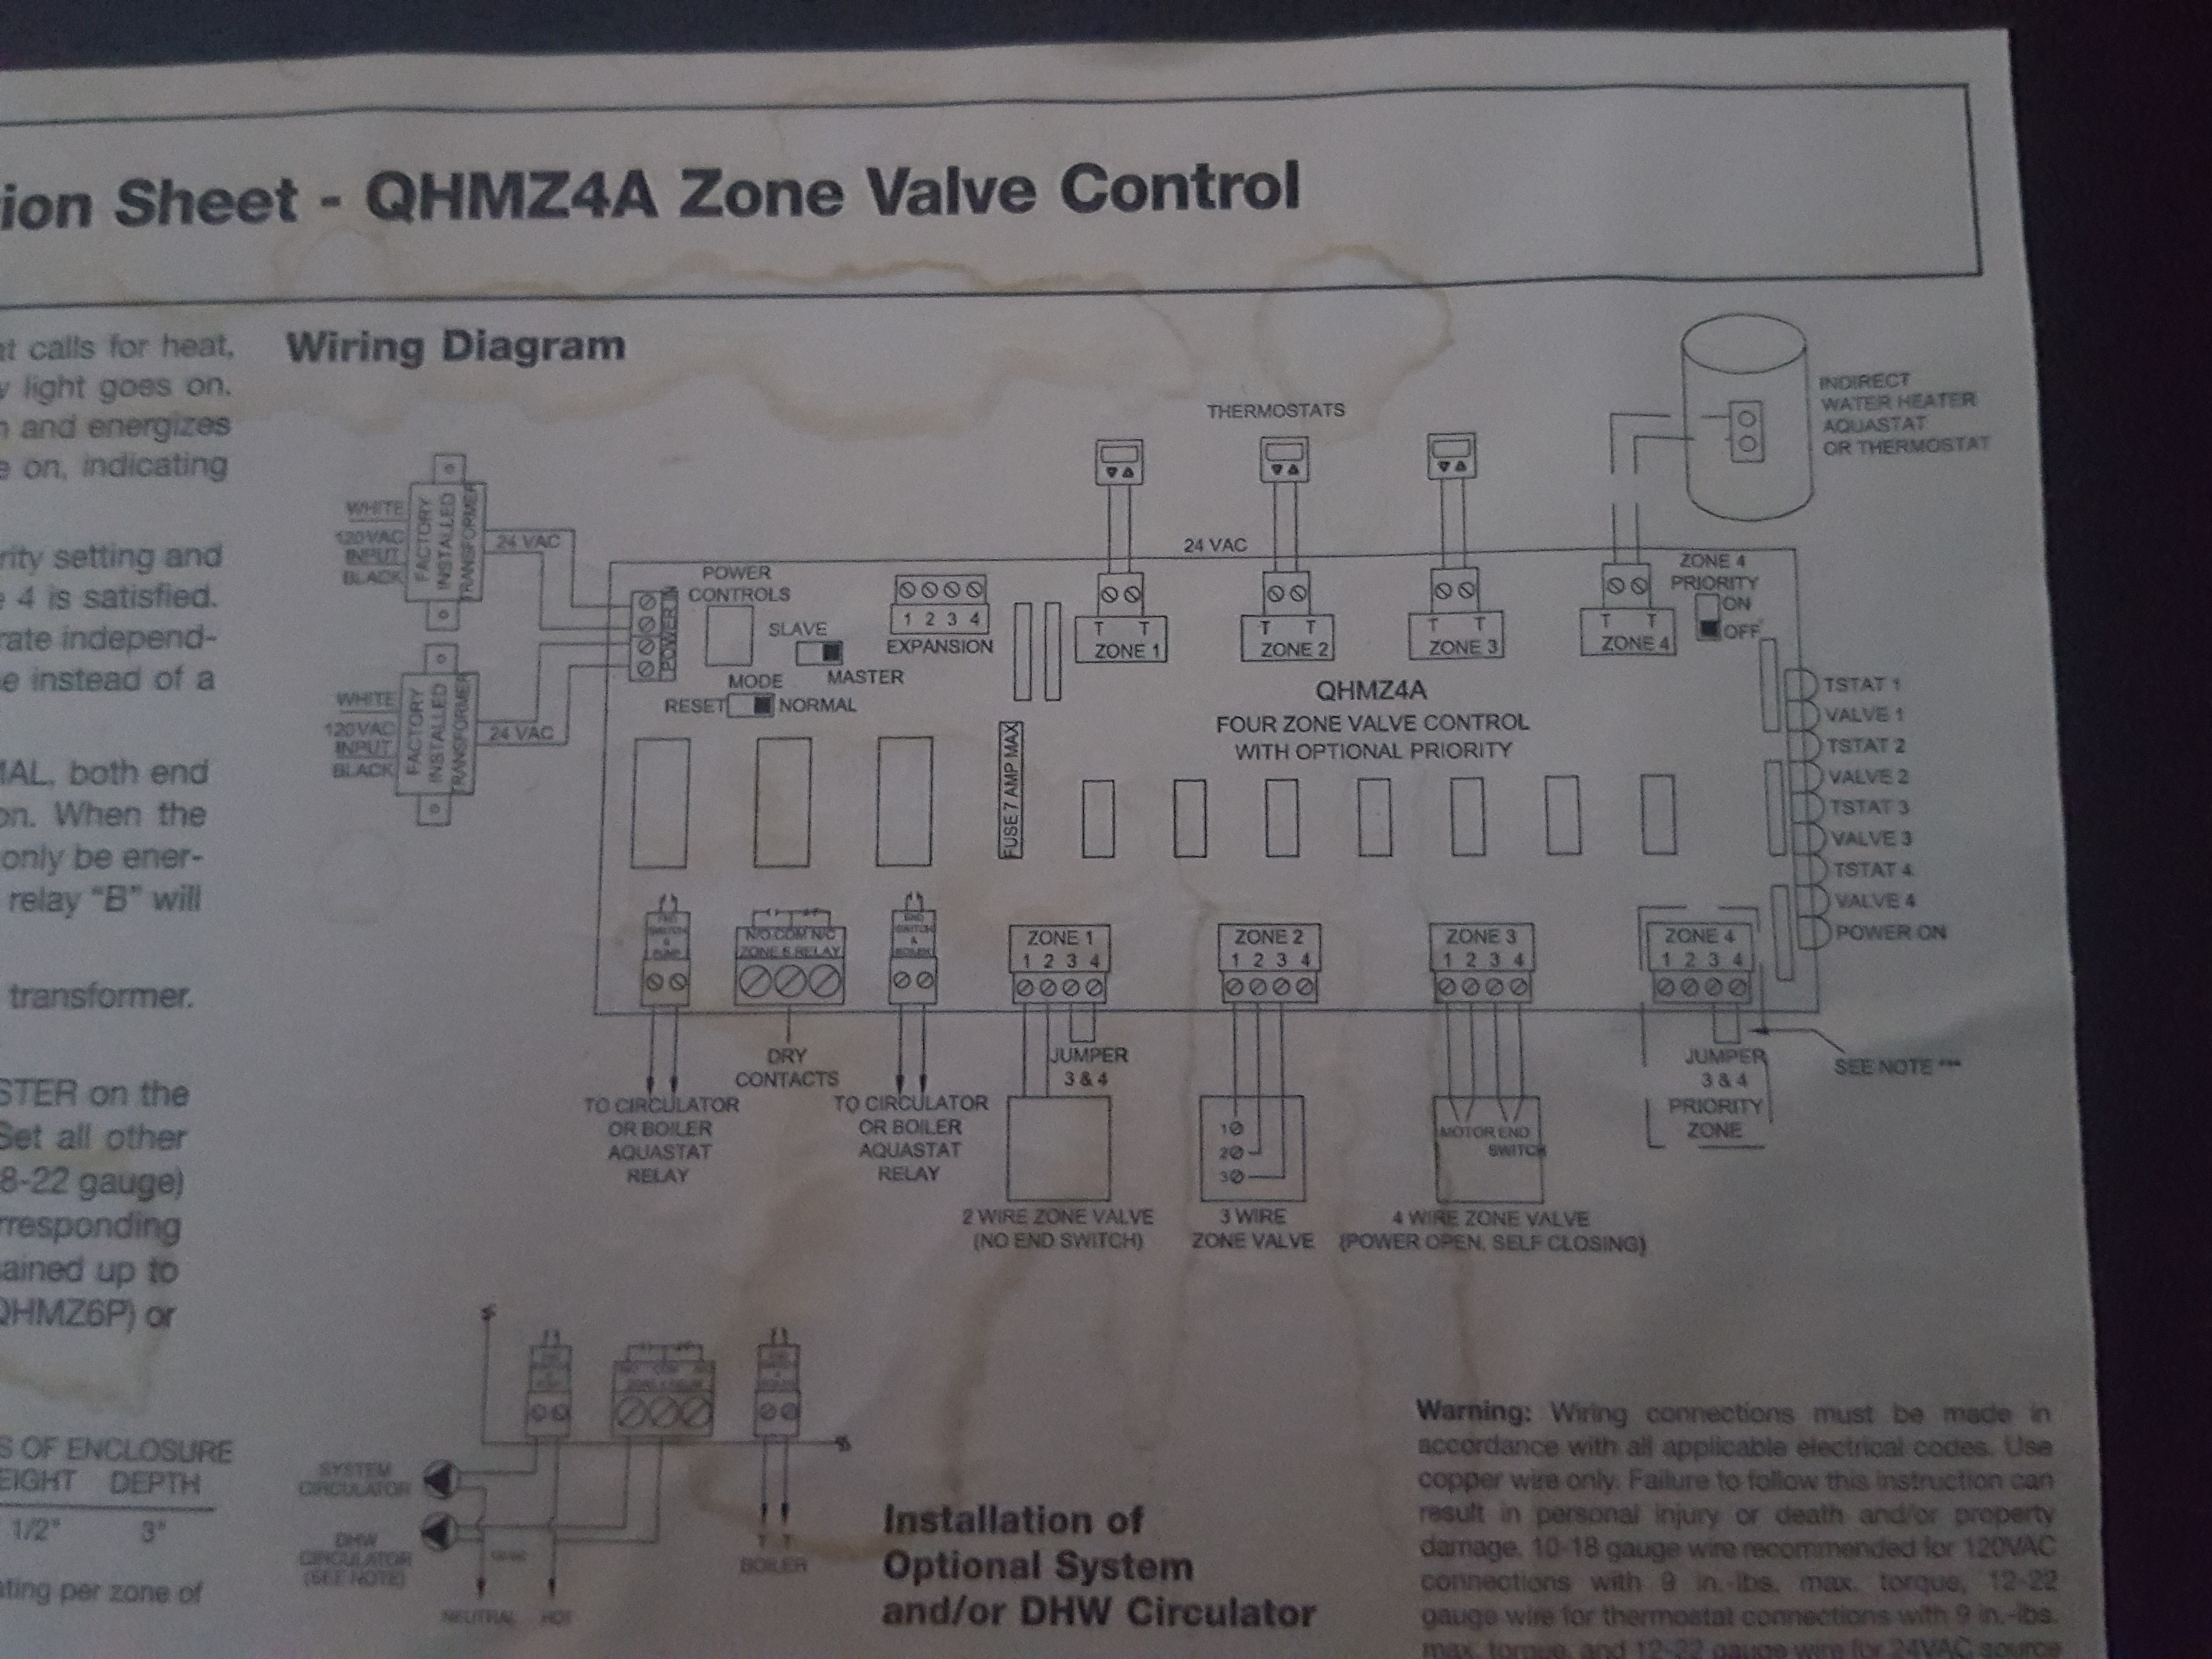 I Have A Hydronic Controller That Think Needs Replacement Zurn Zone Valve Wiring Diagram For Honeywell 20171123 120548